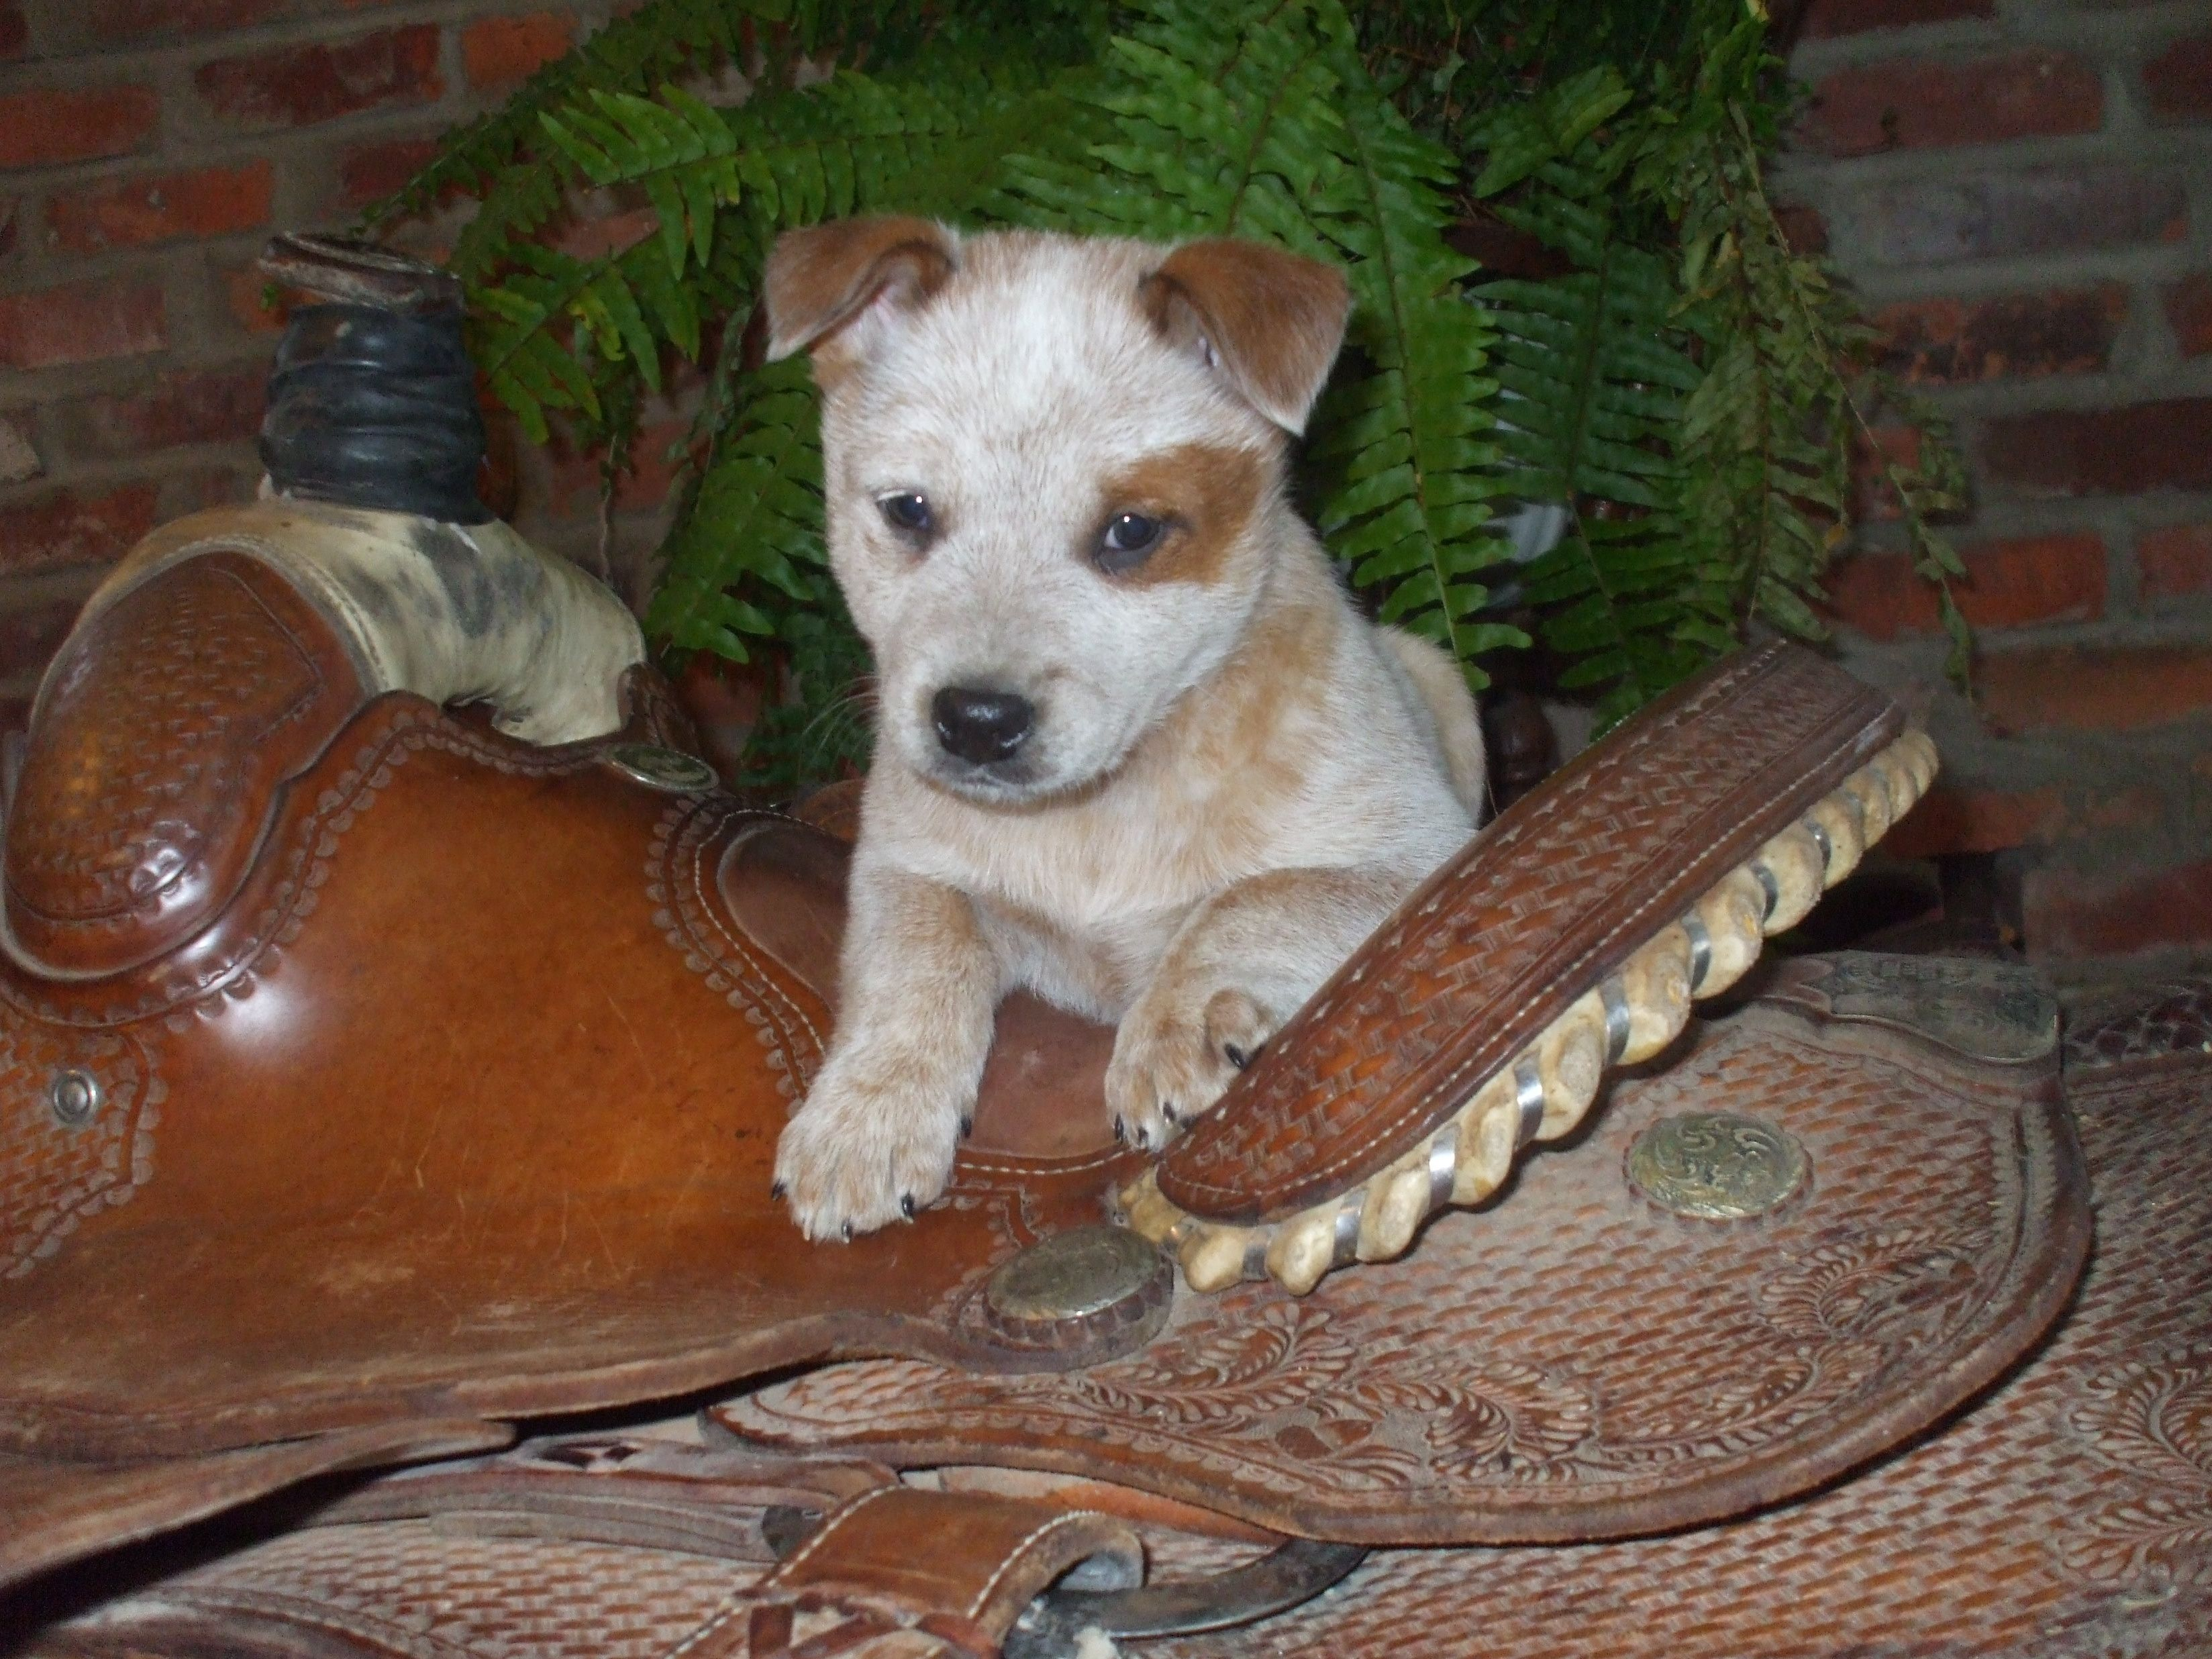 Red Heeler Puppy Looking For Forever Home 3 31 14 Cattle Dogs Rule Blue Heeler Puppies Red Heeler Cattle Dogs Rule Red Heeler Puppies Cattle Dog